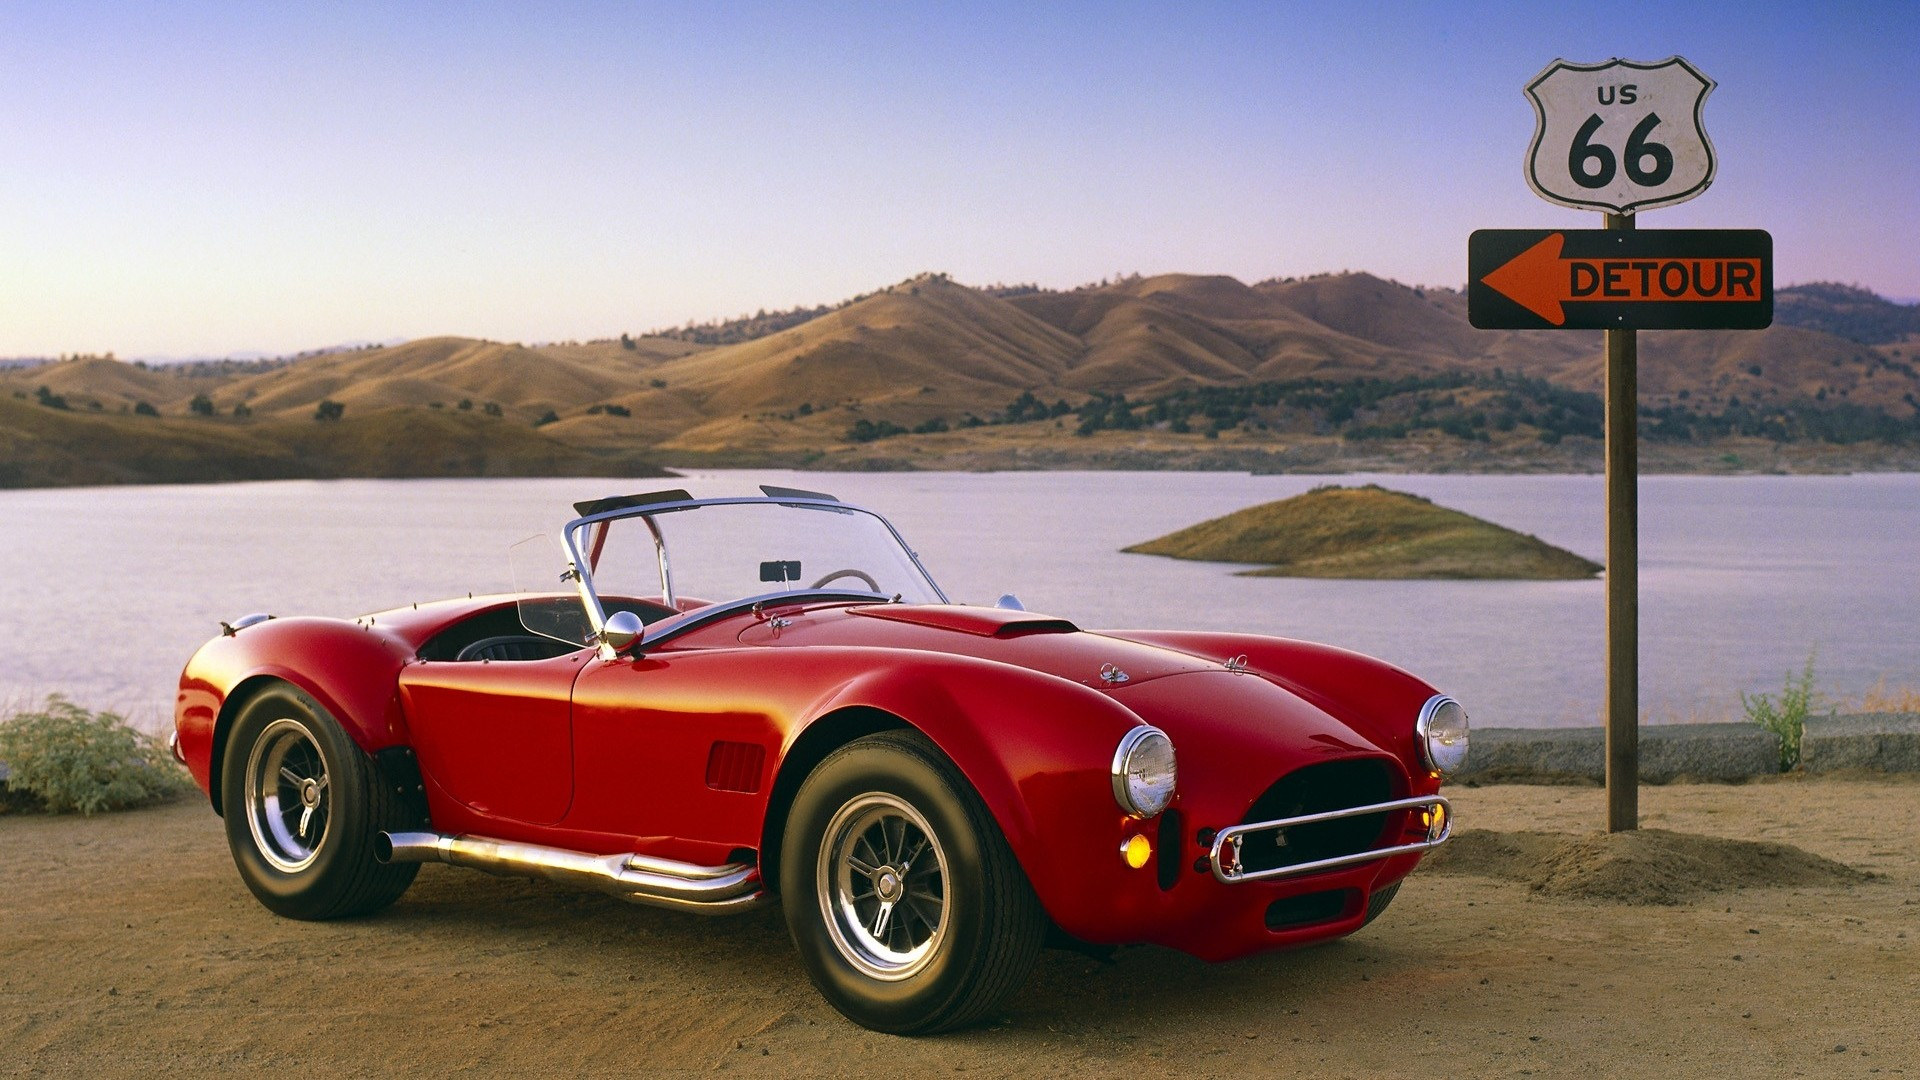 #Usa #Road #Route66 #OldCar #Shelby #ShelbyCobra427 #Wallpaper